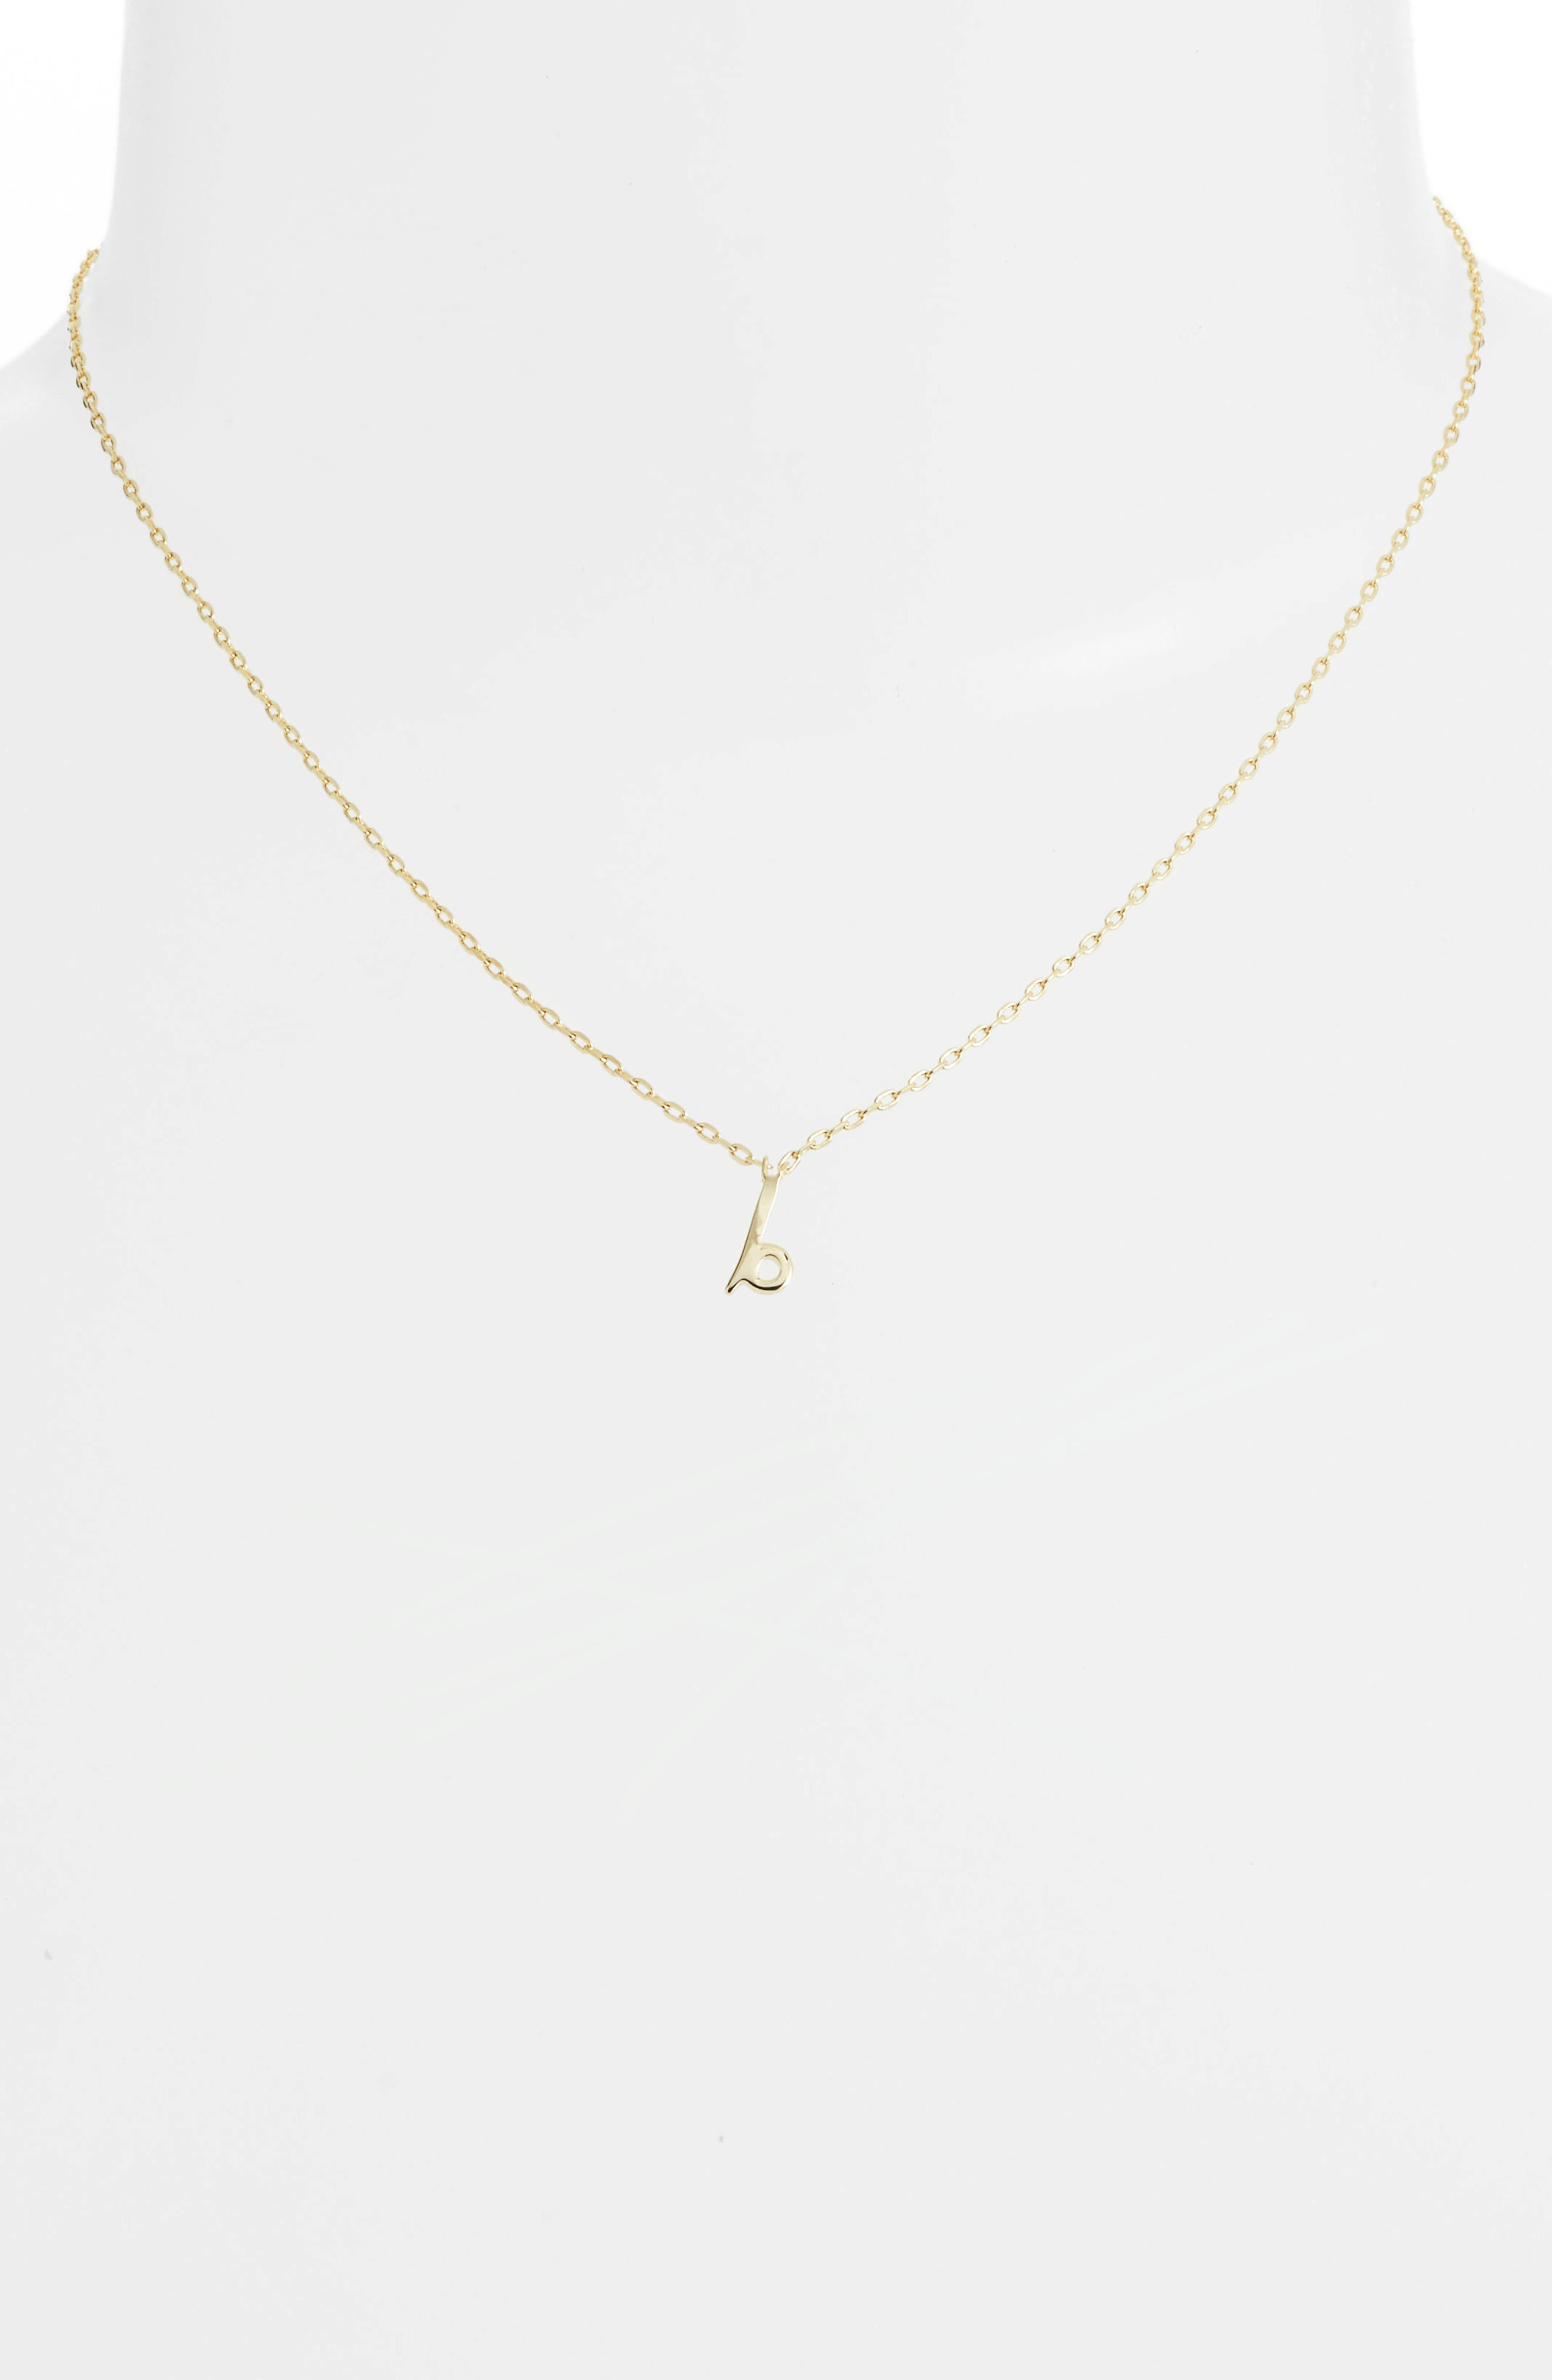 KATE SPADE NEW YORK, kate spade one in a million initial pendant necklace, Alternate thumbnail 2, color, B-GOLD